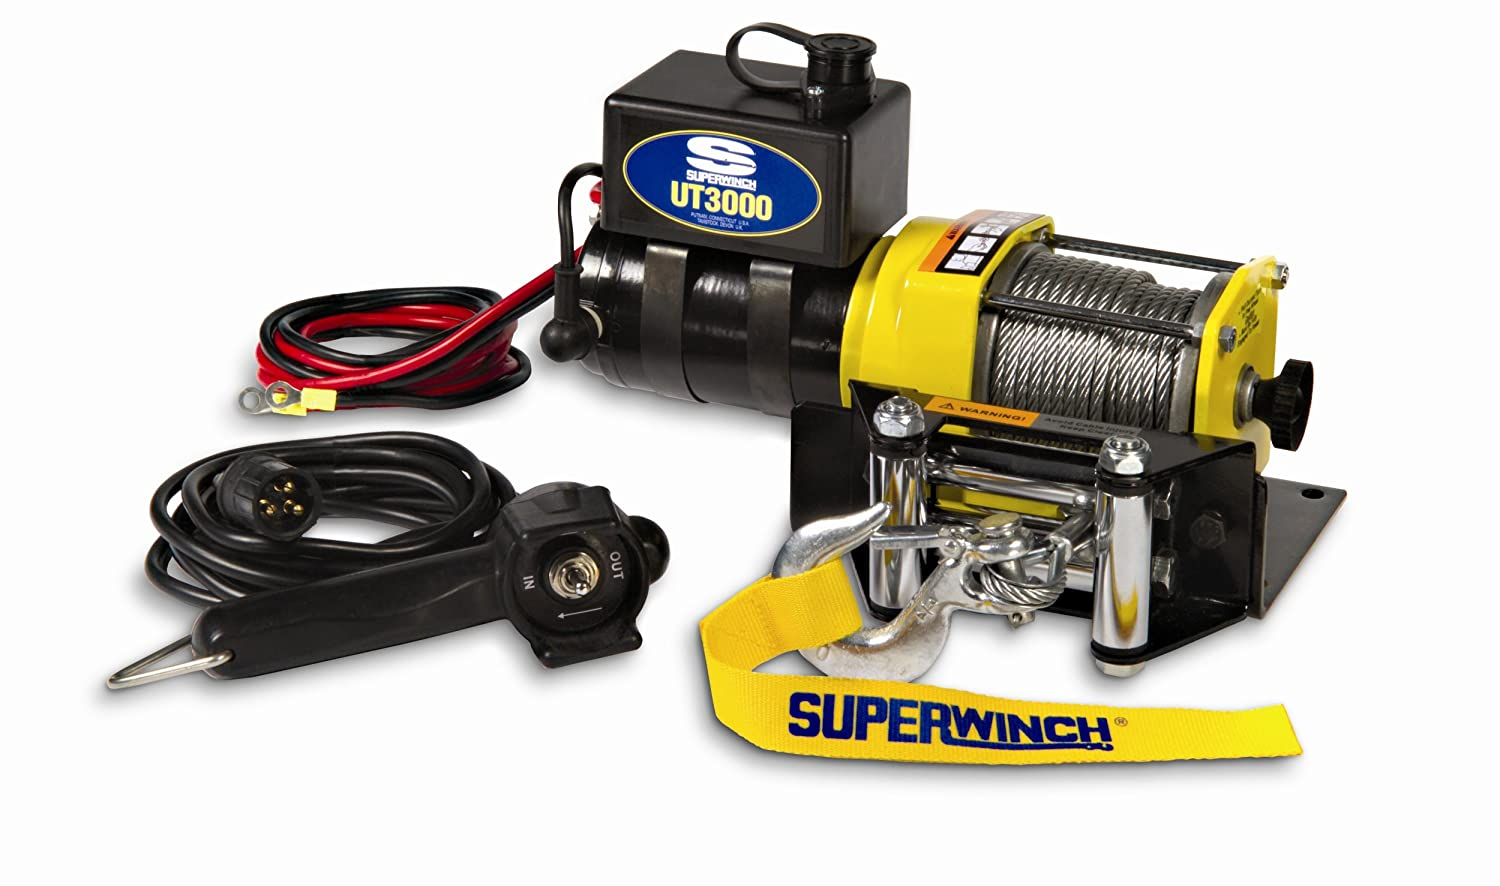 Amazon.com: Superwinch 1331200 UT3000, 12 VDC winch, 3,000lb/1360 kg with  mount plate, Roller Fairlead & 12' remote: Automotive